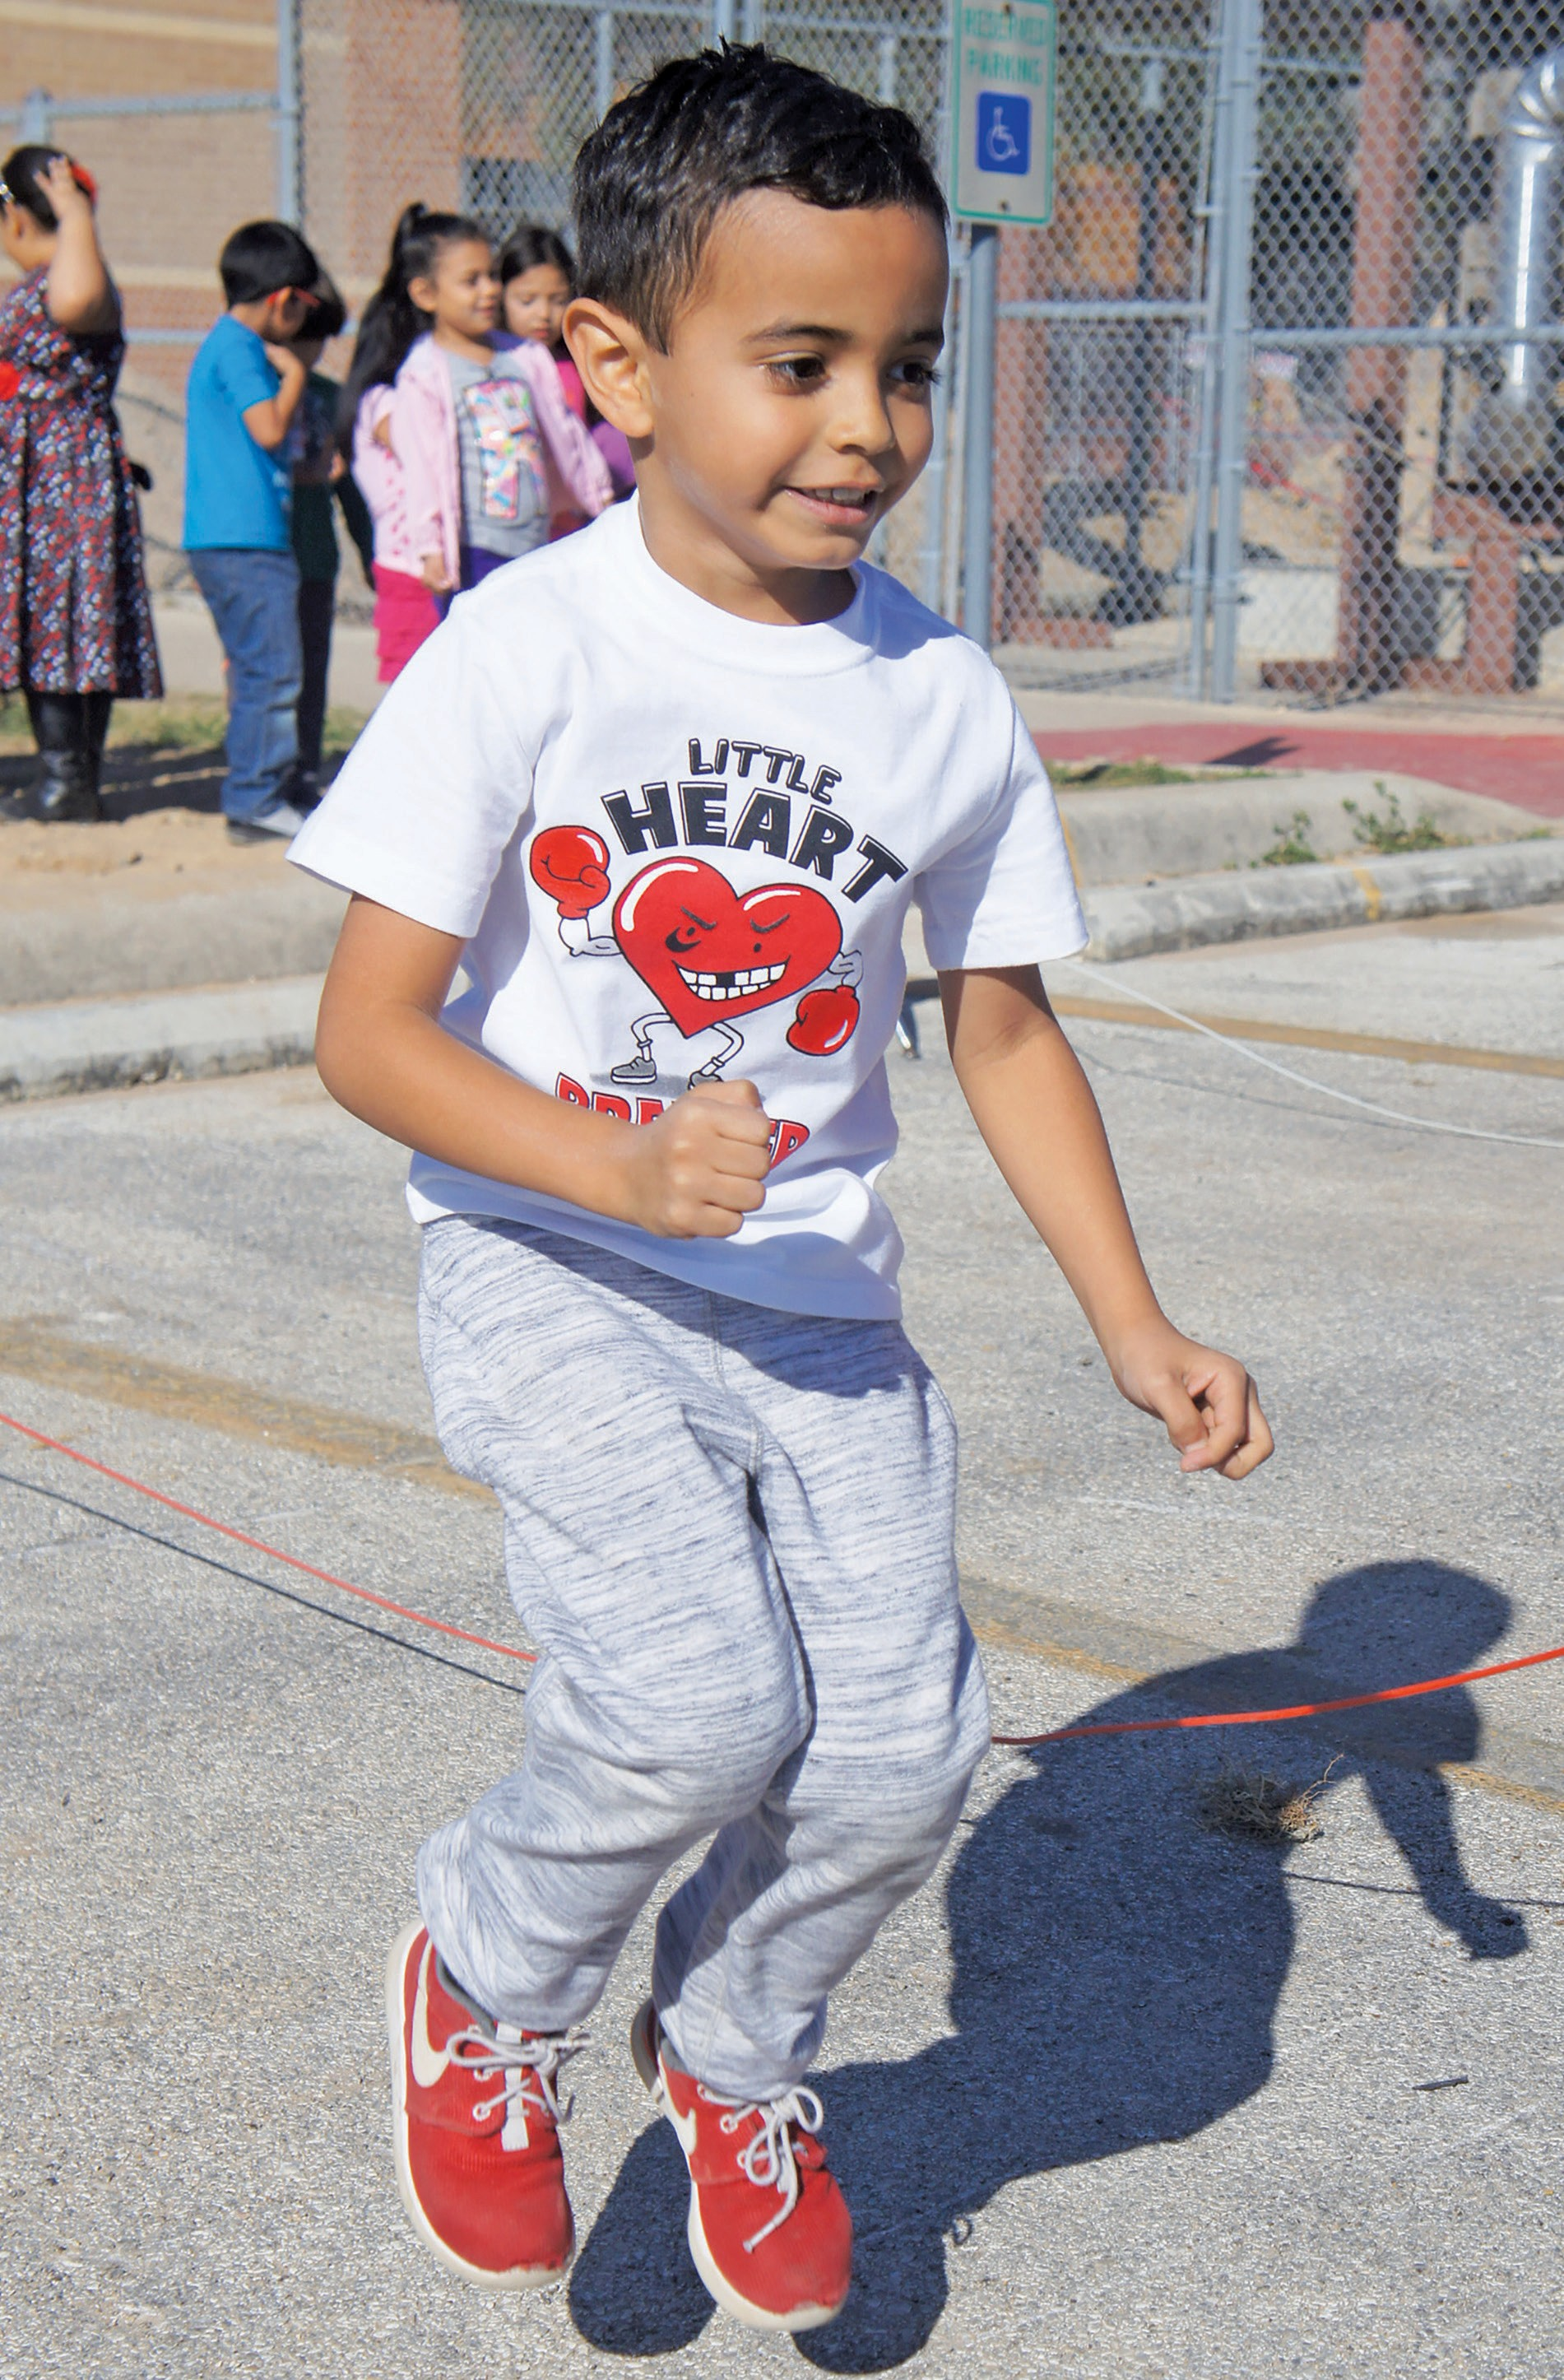 Pleasanton Primary student Elijah Velasquez was among those participating in Jump Rope for Heart activities on Friday, Feb. 12. The youngster is the son of Amanda and Kevin Velasquez and is in Erica Treviño's kindergarten class.